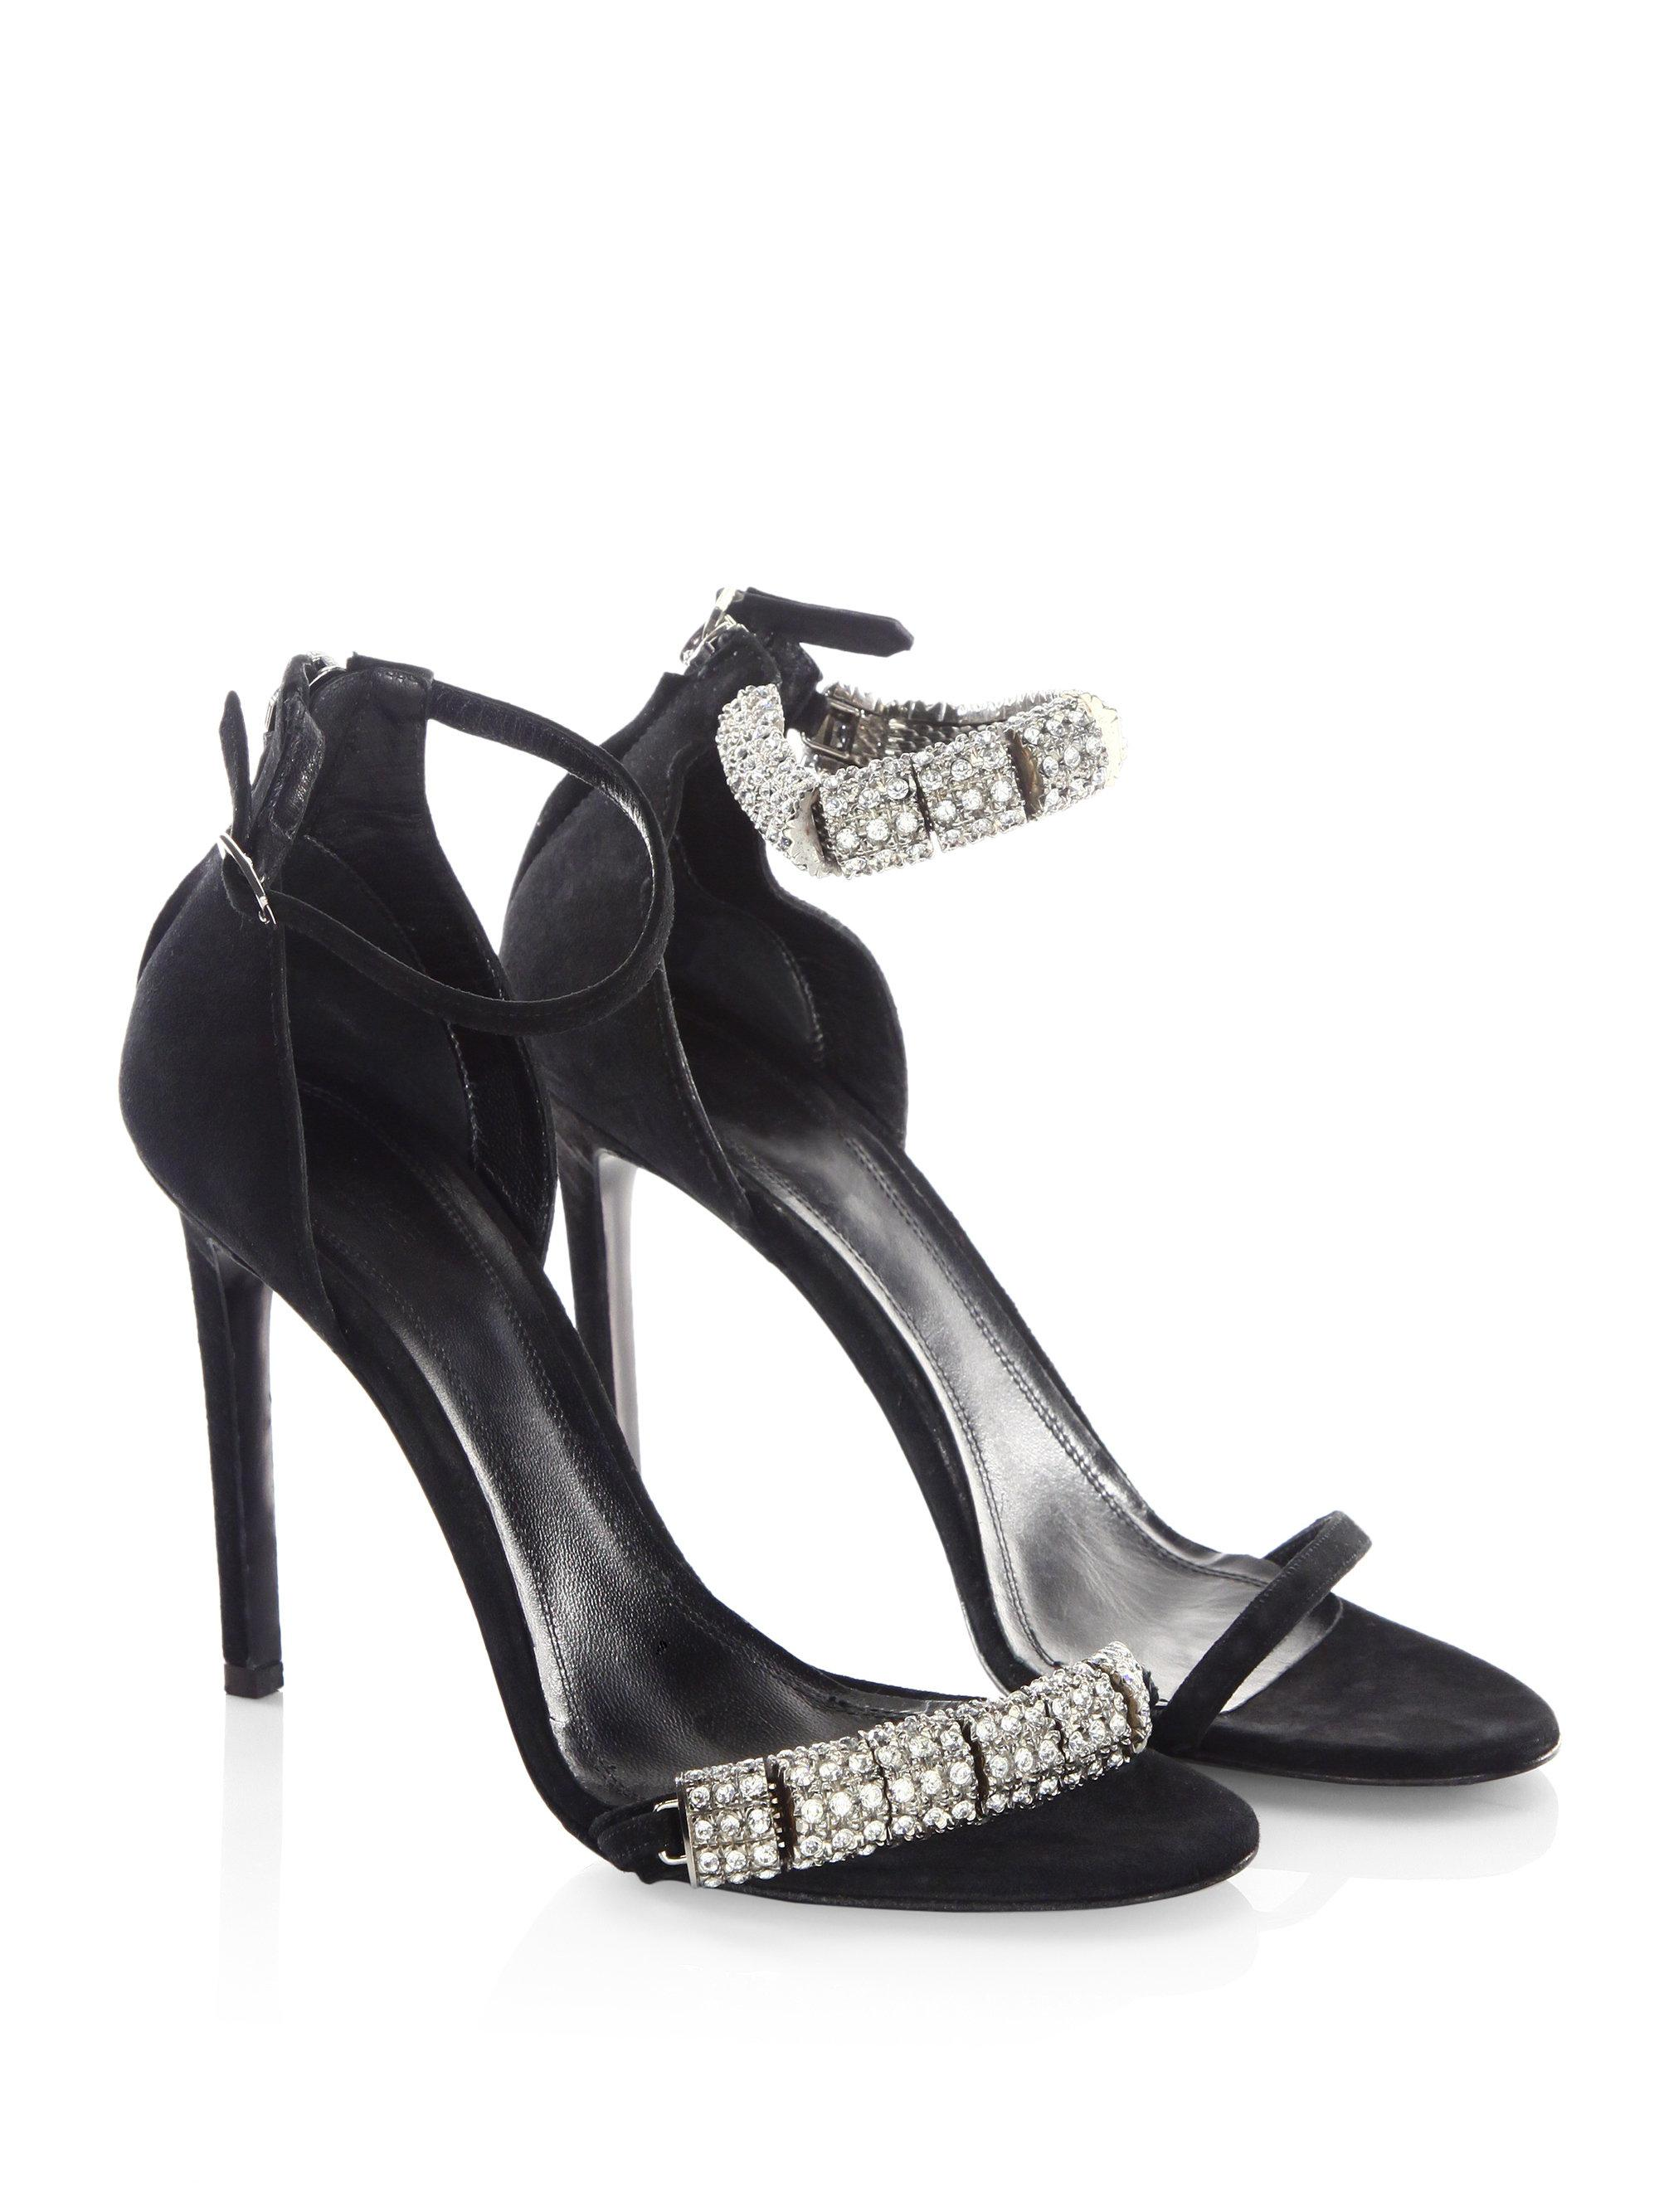 c4b2ff902d6683 Lyst - CALVIN KLEIN 205W39NYC Camelle Jeweled Suede Ankle-strap ...